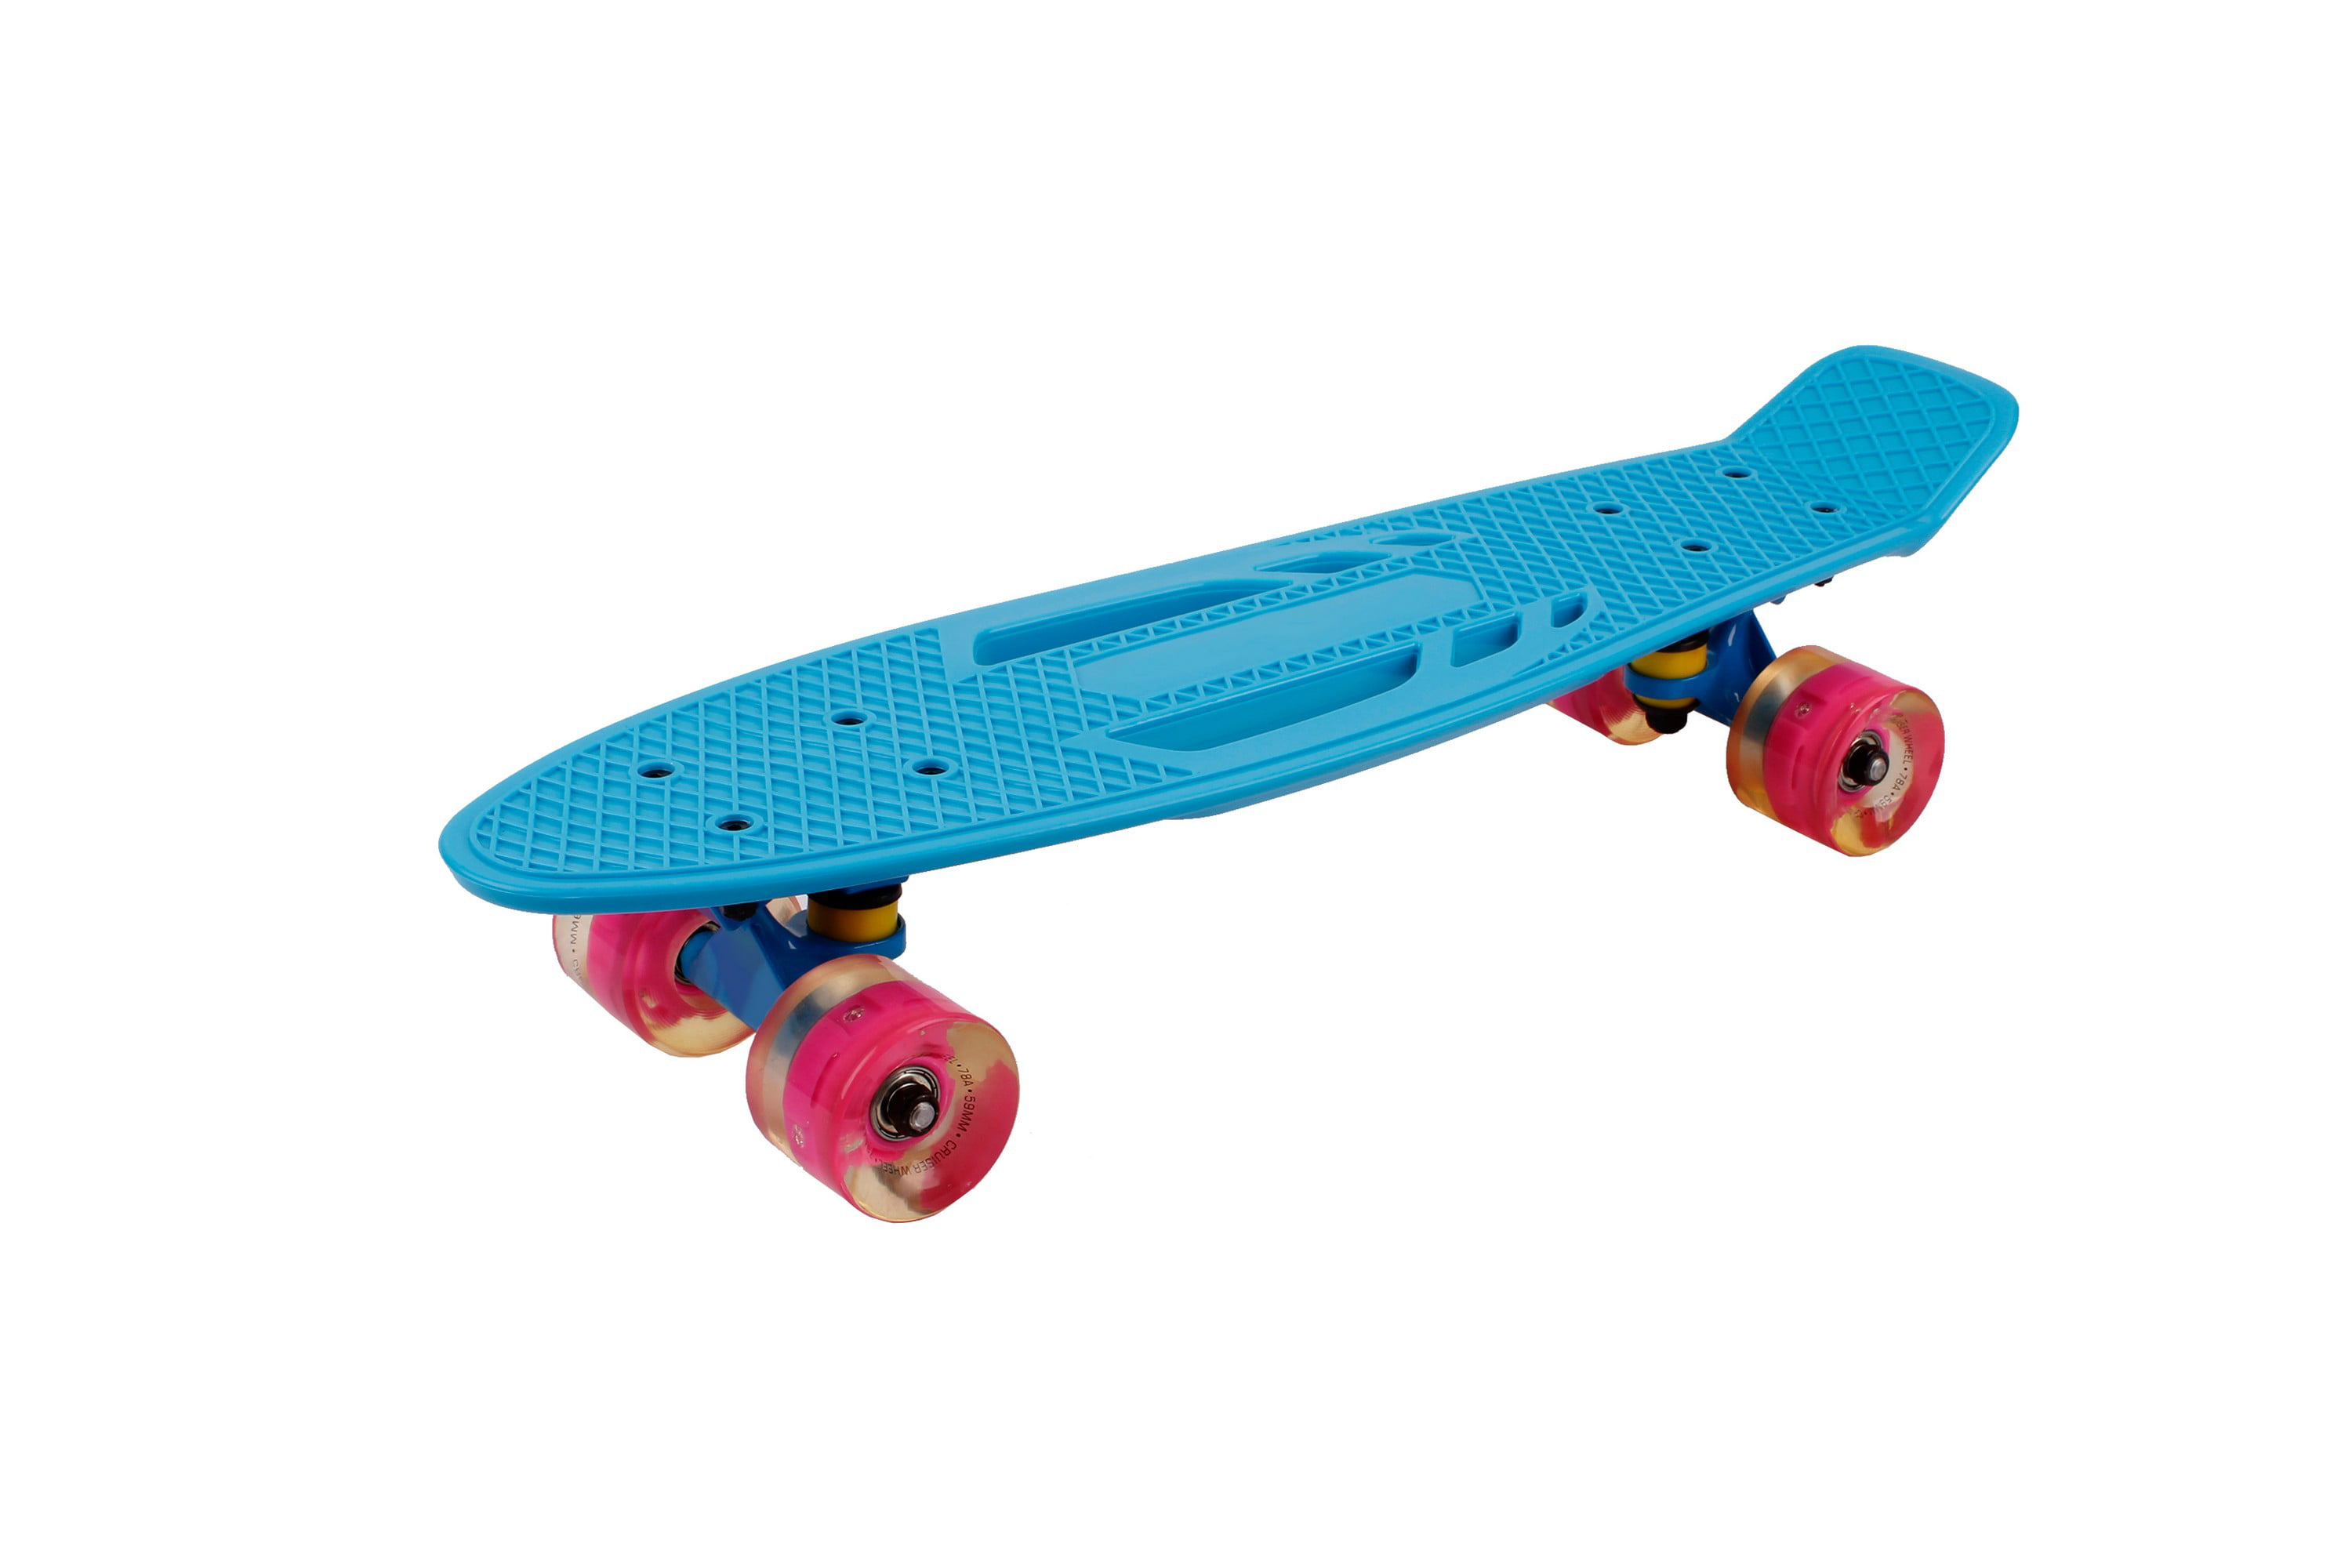 Shortboard for Kids and Adults 220 Ibs WZHESS 22-inch Vintage Skateboard,Complete Highly Flexible Plastic Cruiser Board with Smooth PU Casters,Skate for Beginners and Professionals